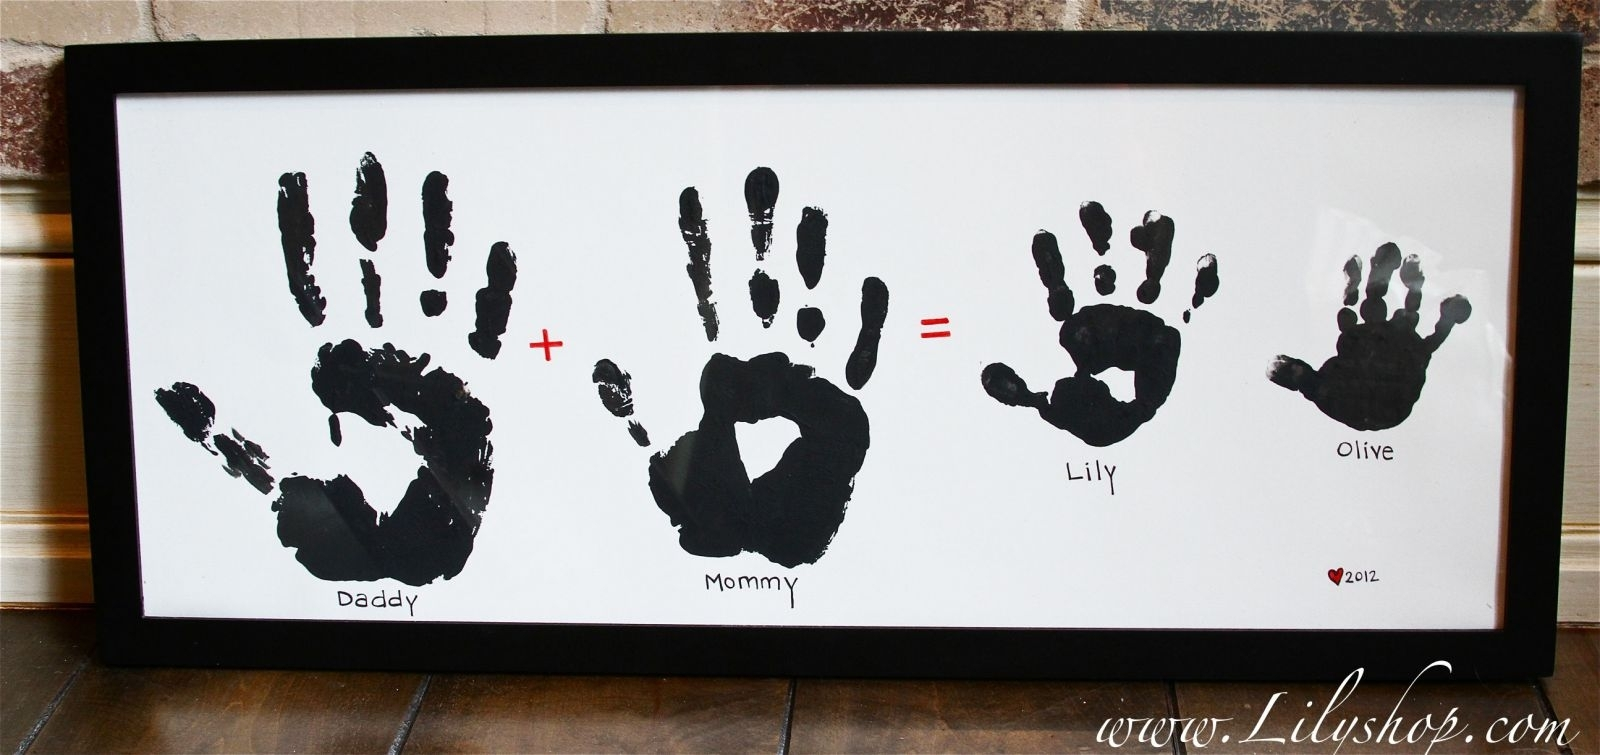 40 Fun And Creative Handprint Crafts in Handprint Footprint With Siblings Ideas